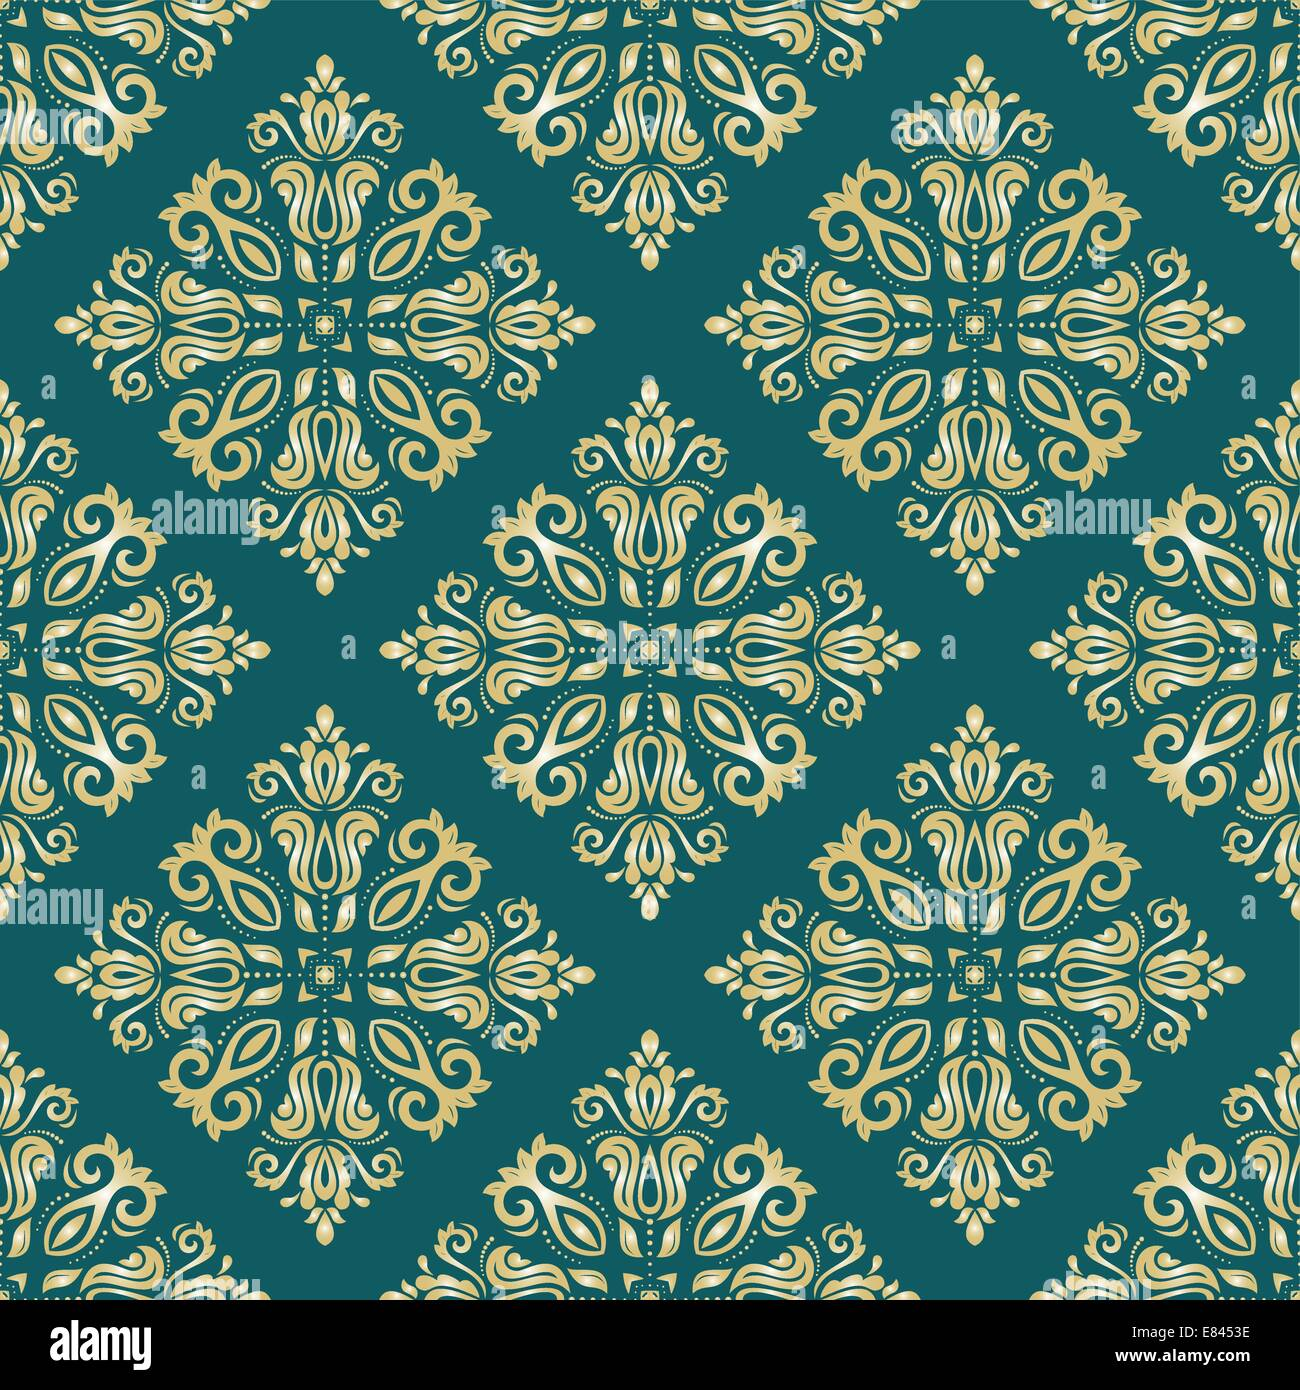 Oriental vector pattern with damask, arabesque and floral elements. Seamless abstract background - Stock Image